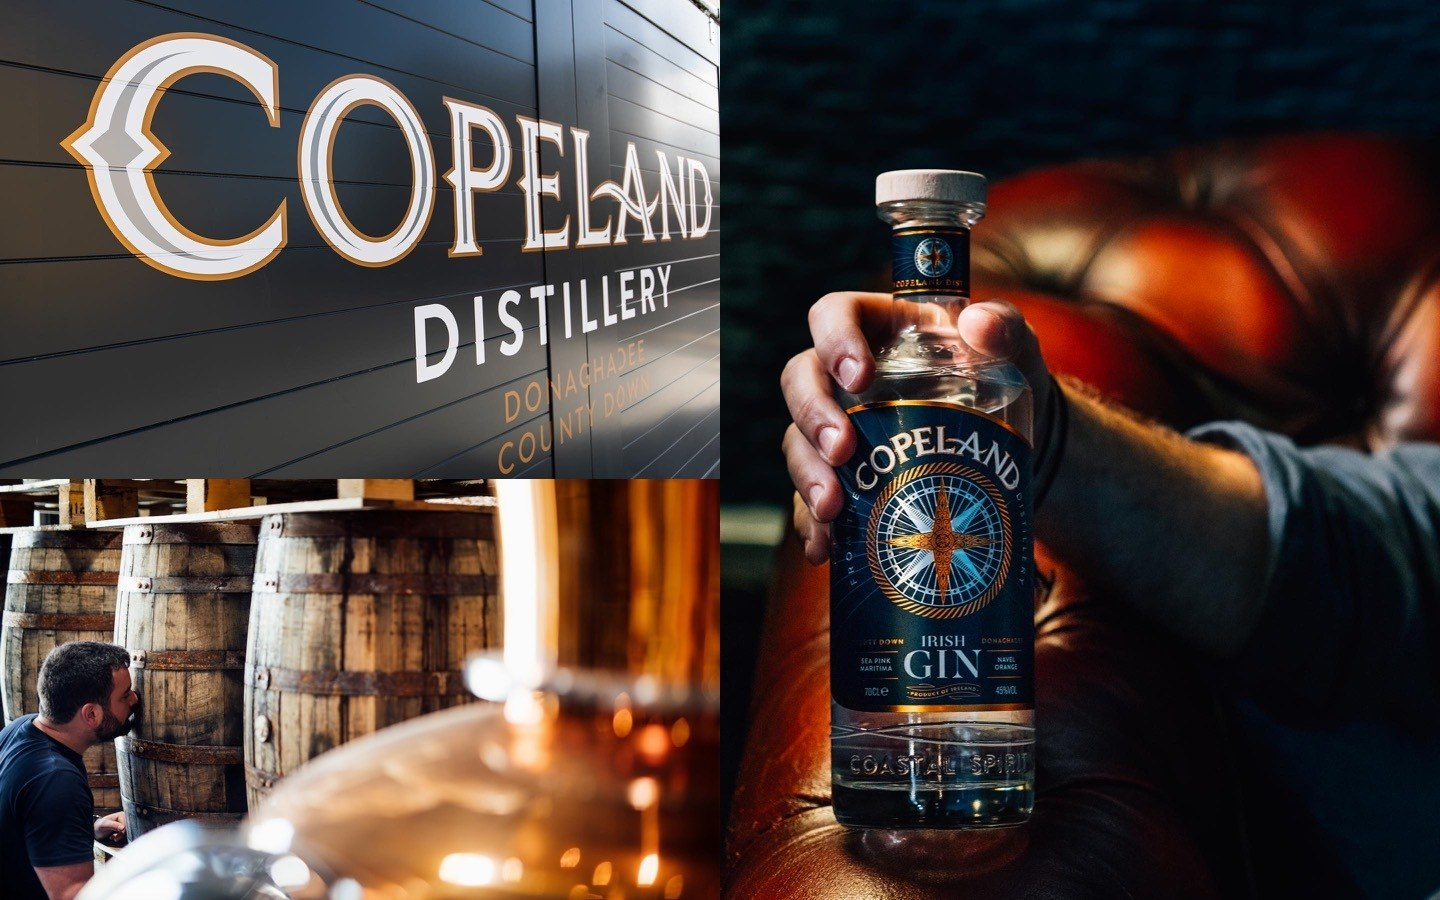 Images of the Copeland Distillery branded sliding door, it's Irish gin and their copper stills